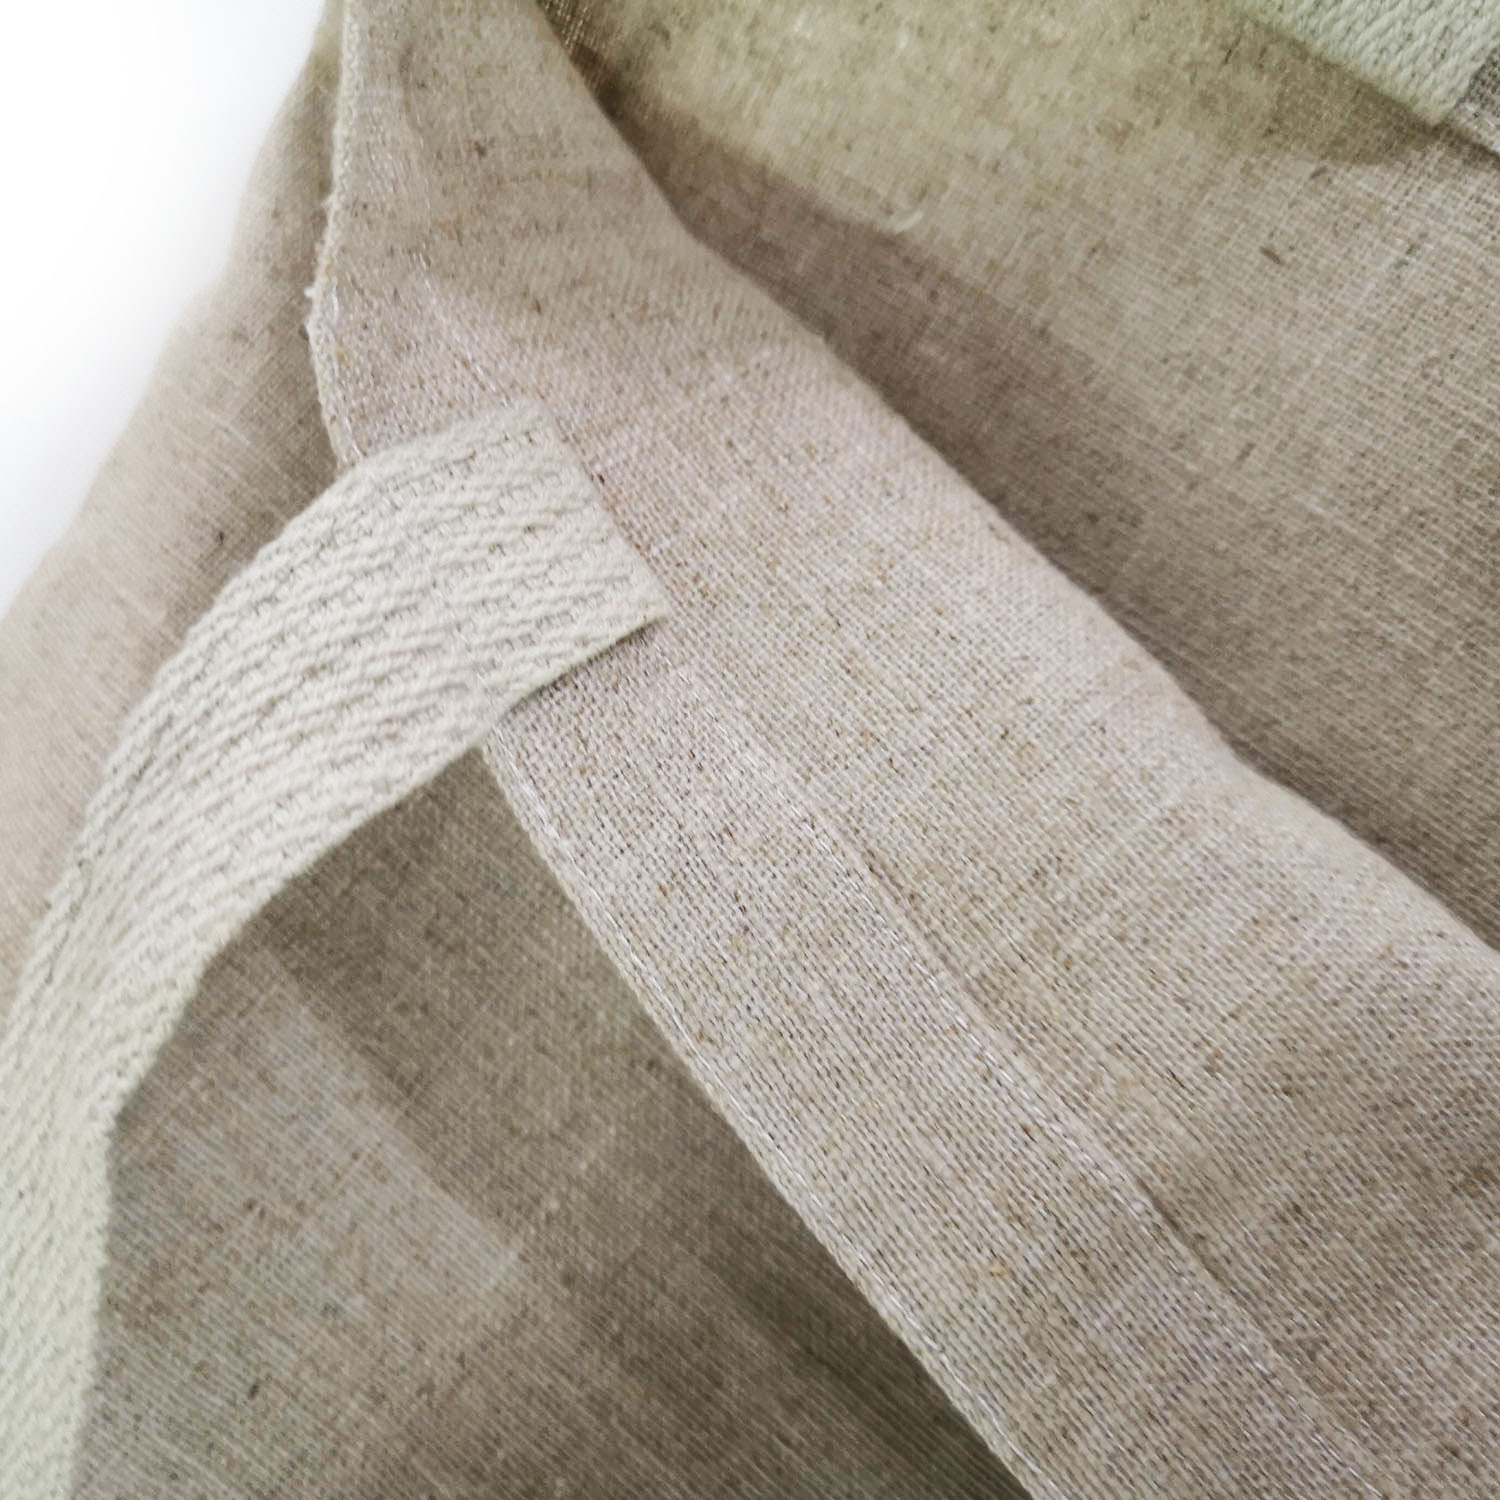 picture of interior of hemp shopping bag